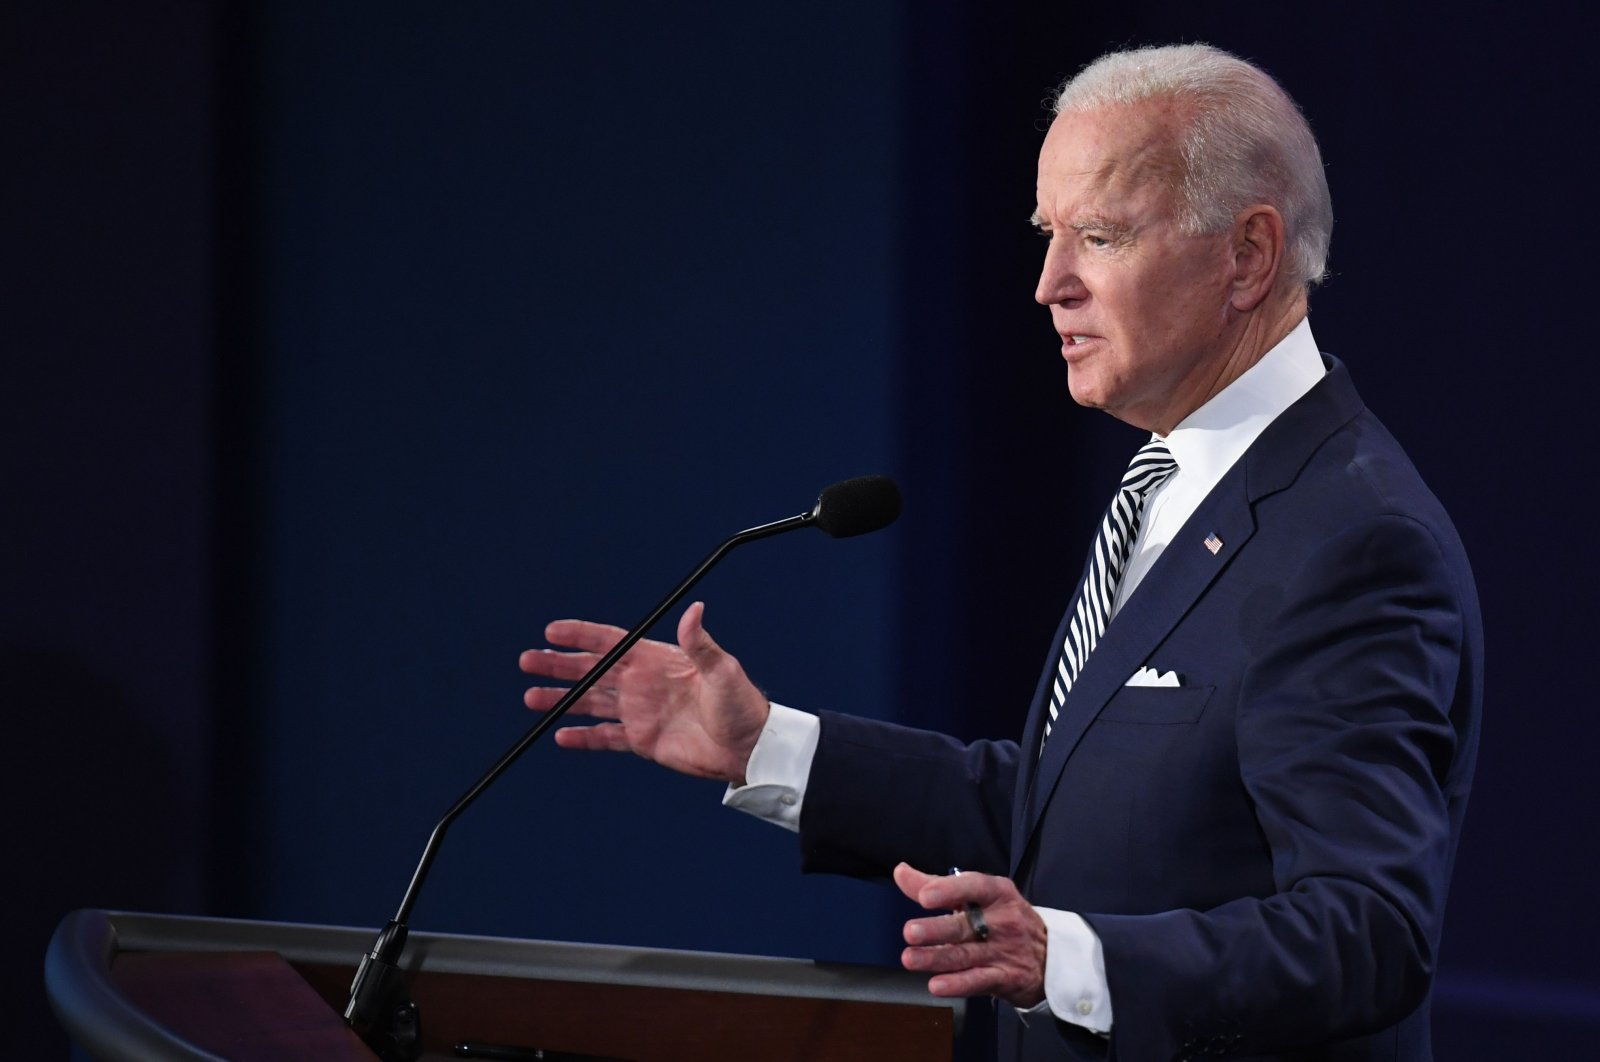 Democratic presidential candidate and former U.S. Vice President Joe Biden speaks during the first presidential debate at Case Western Reserve University and Cleveland Clinic in Cleveland, Ohio, on Sept. 29, 2020. (AFP Photo)